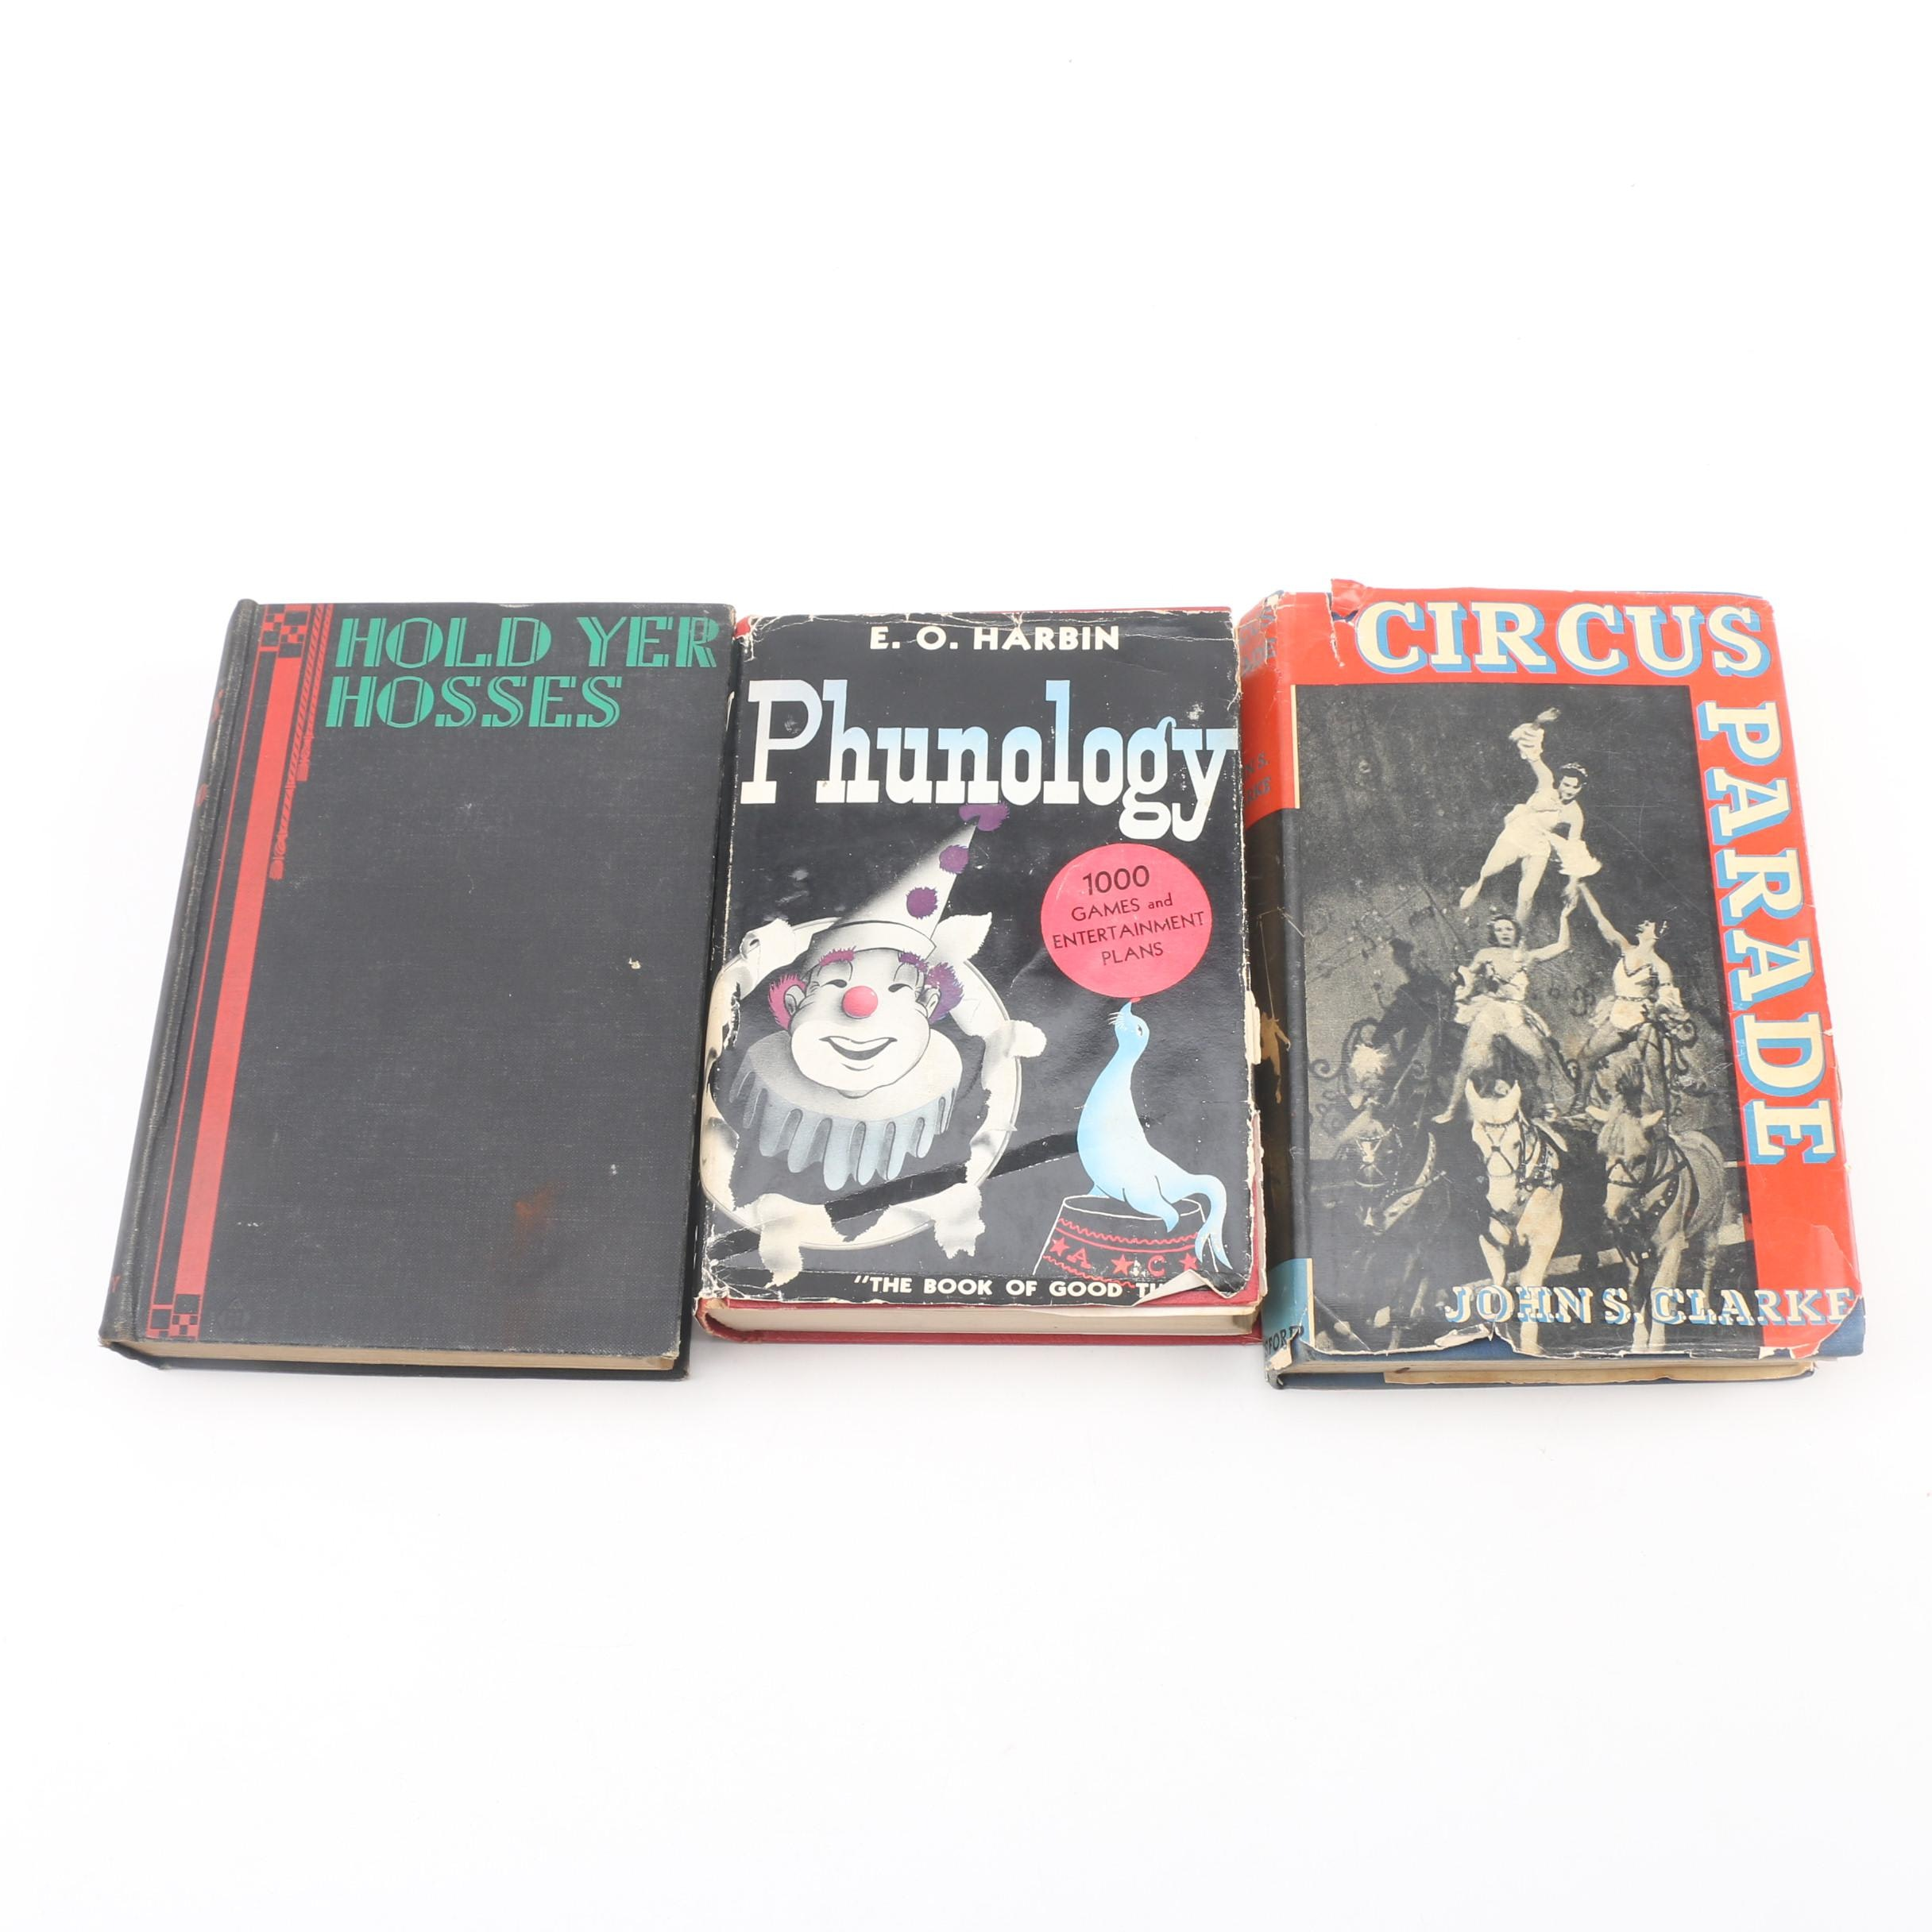 Books on Circuses, Clowns, and Games